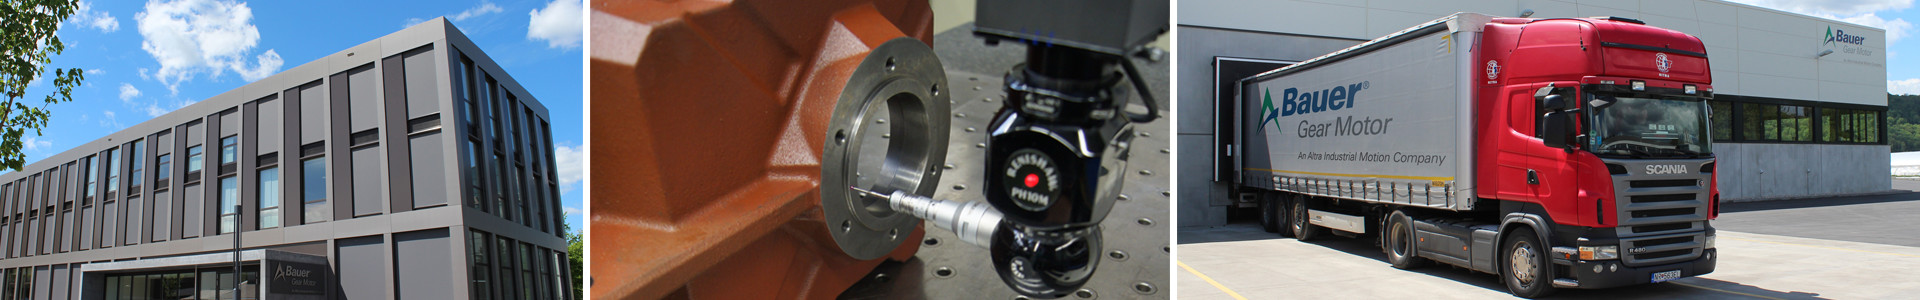 Bauer Gear Motor - Company Overview